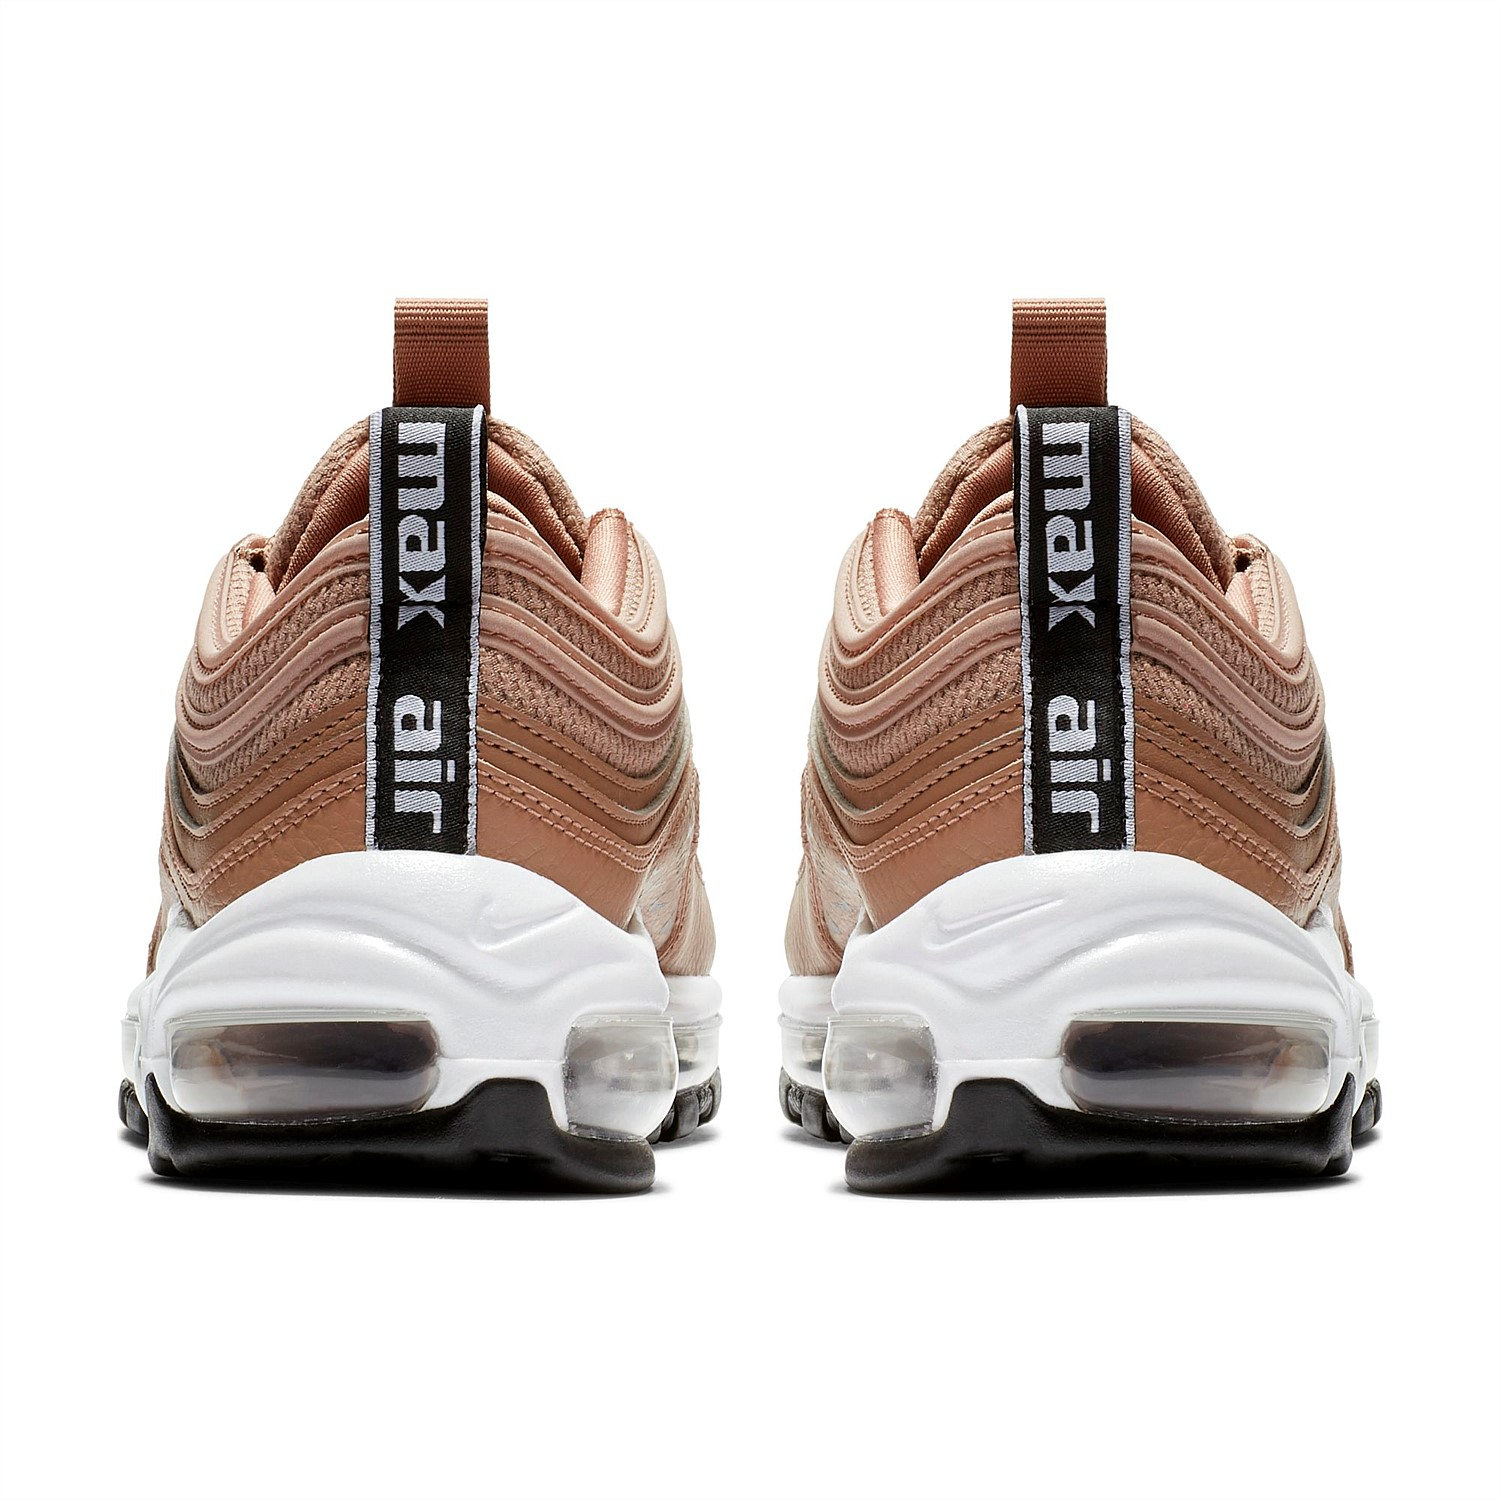 reputable site 4fcfa 89968 Air Max 97 Lux Womens Sold Out. Previous. Next